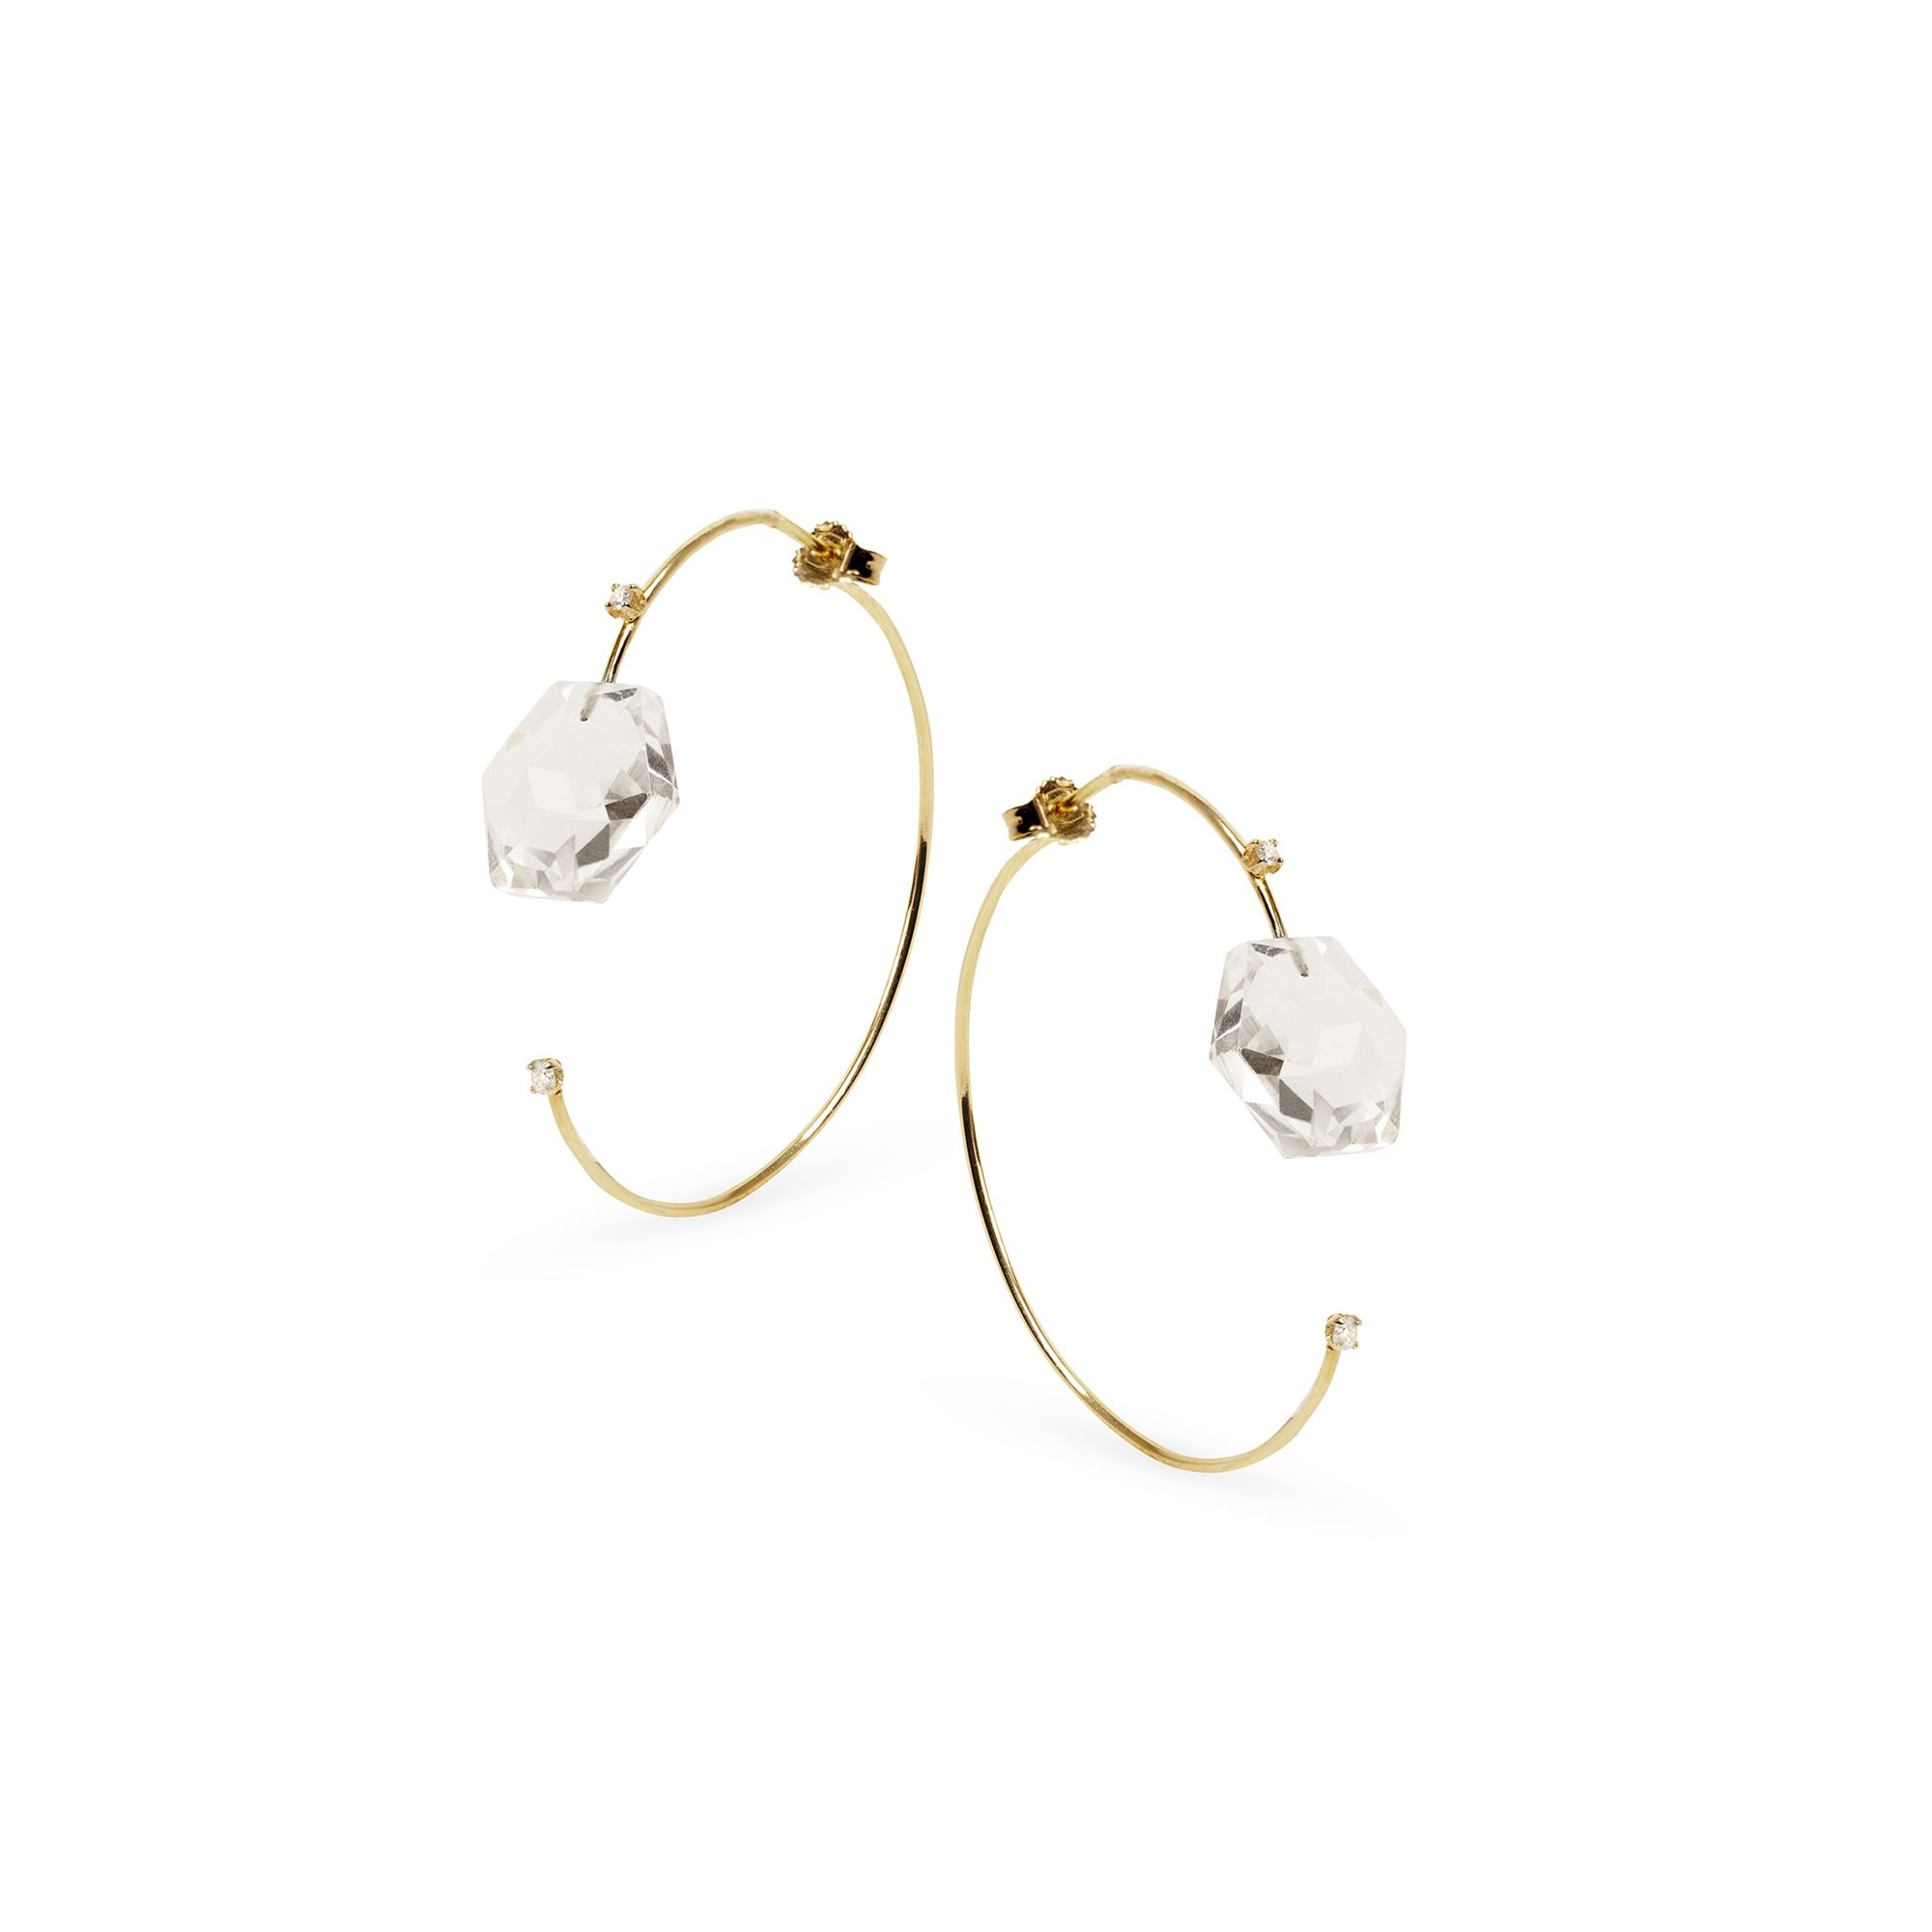 Front-back hoop earrings  Yellow gold earrings with diamonds and crystals